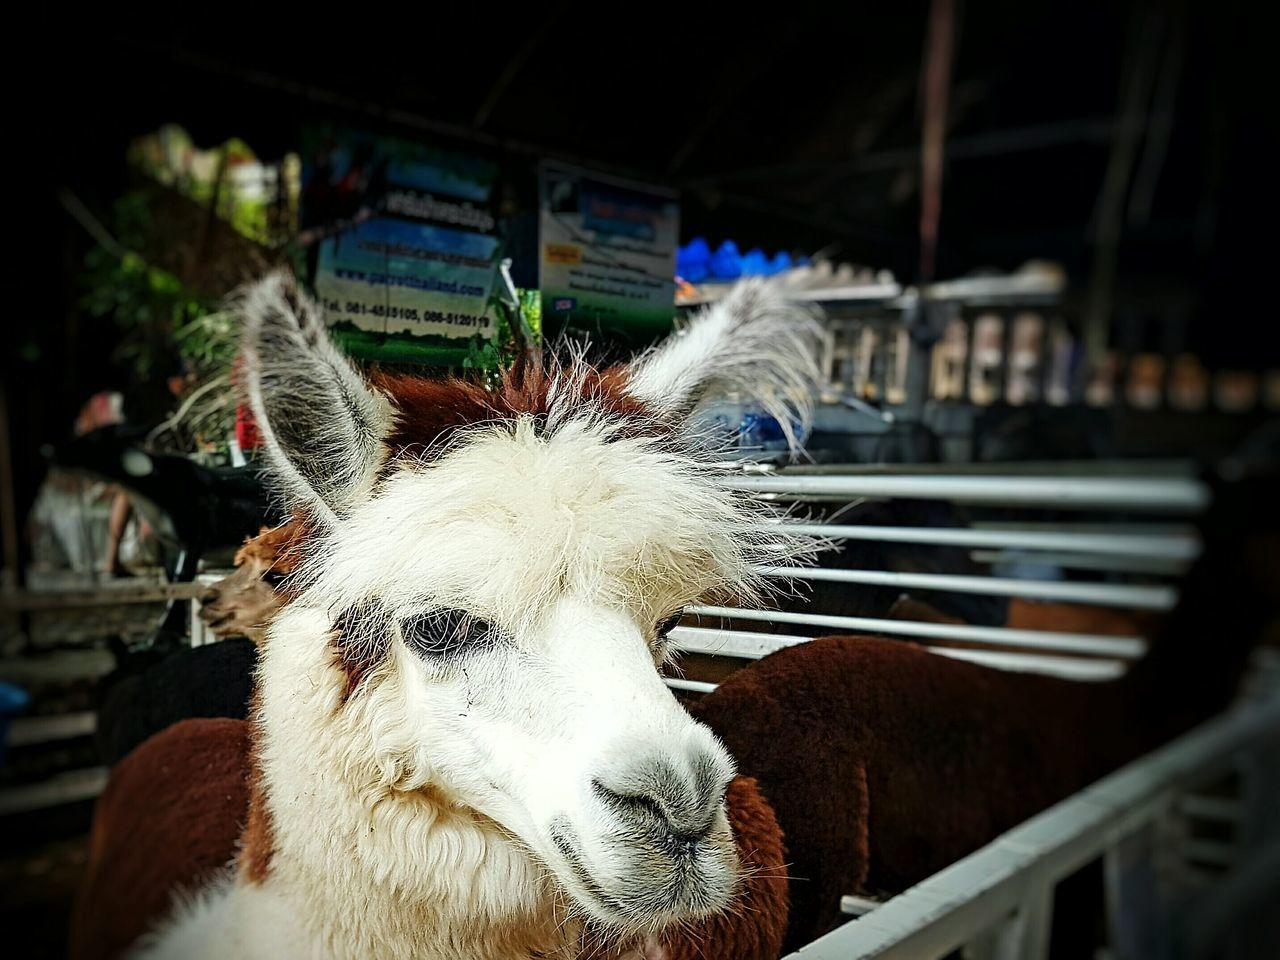 Alpaca Animals Animal Photography Animal Portrait Bangkok Thailand Thailand Bangkok Kwan Riam Market First Eyeem Photo Animals Should Be Free